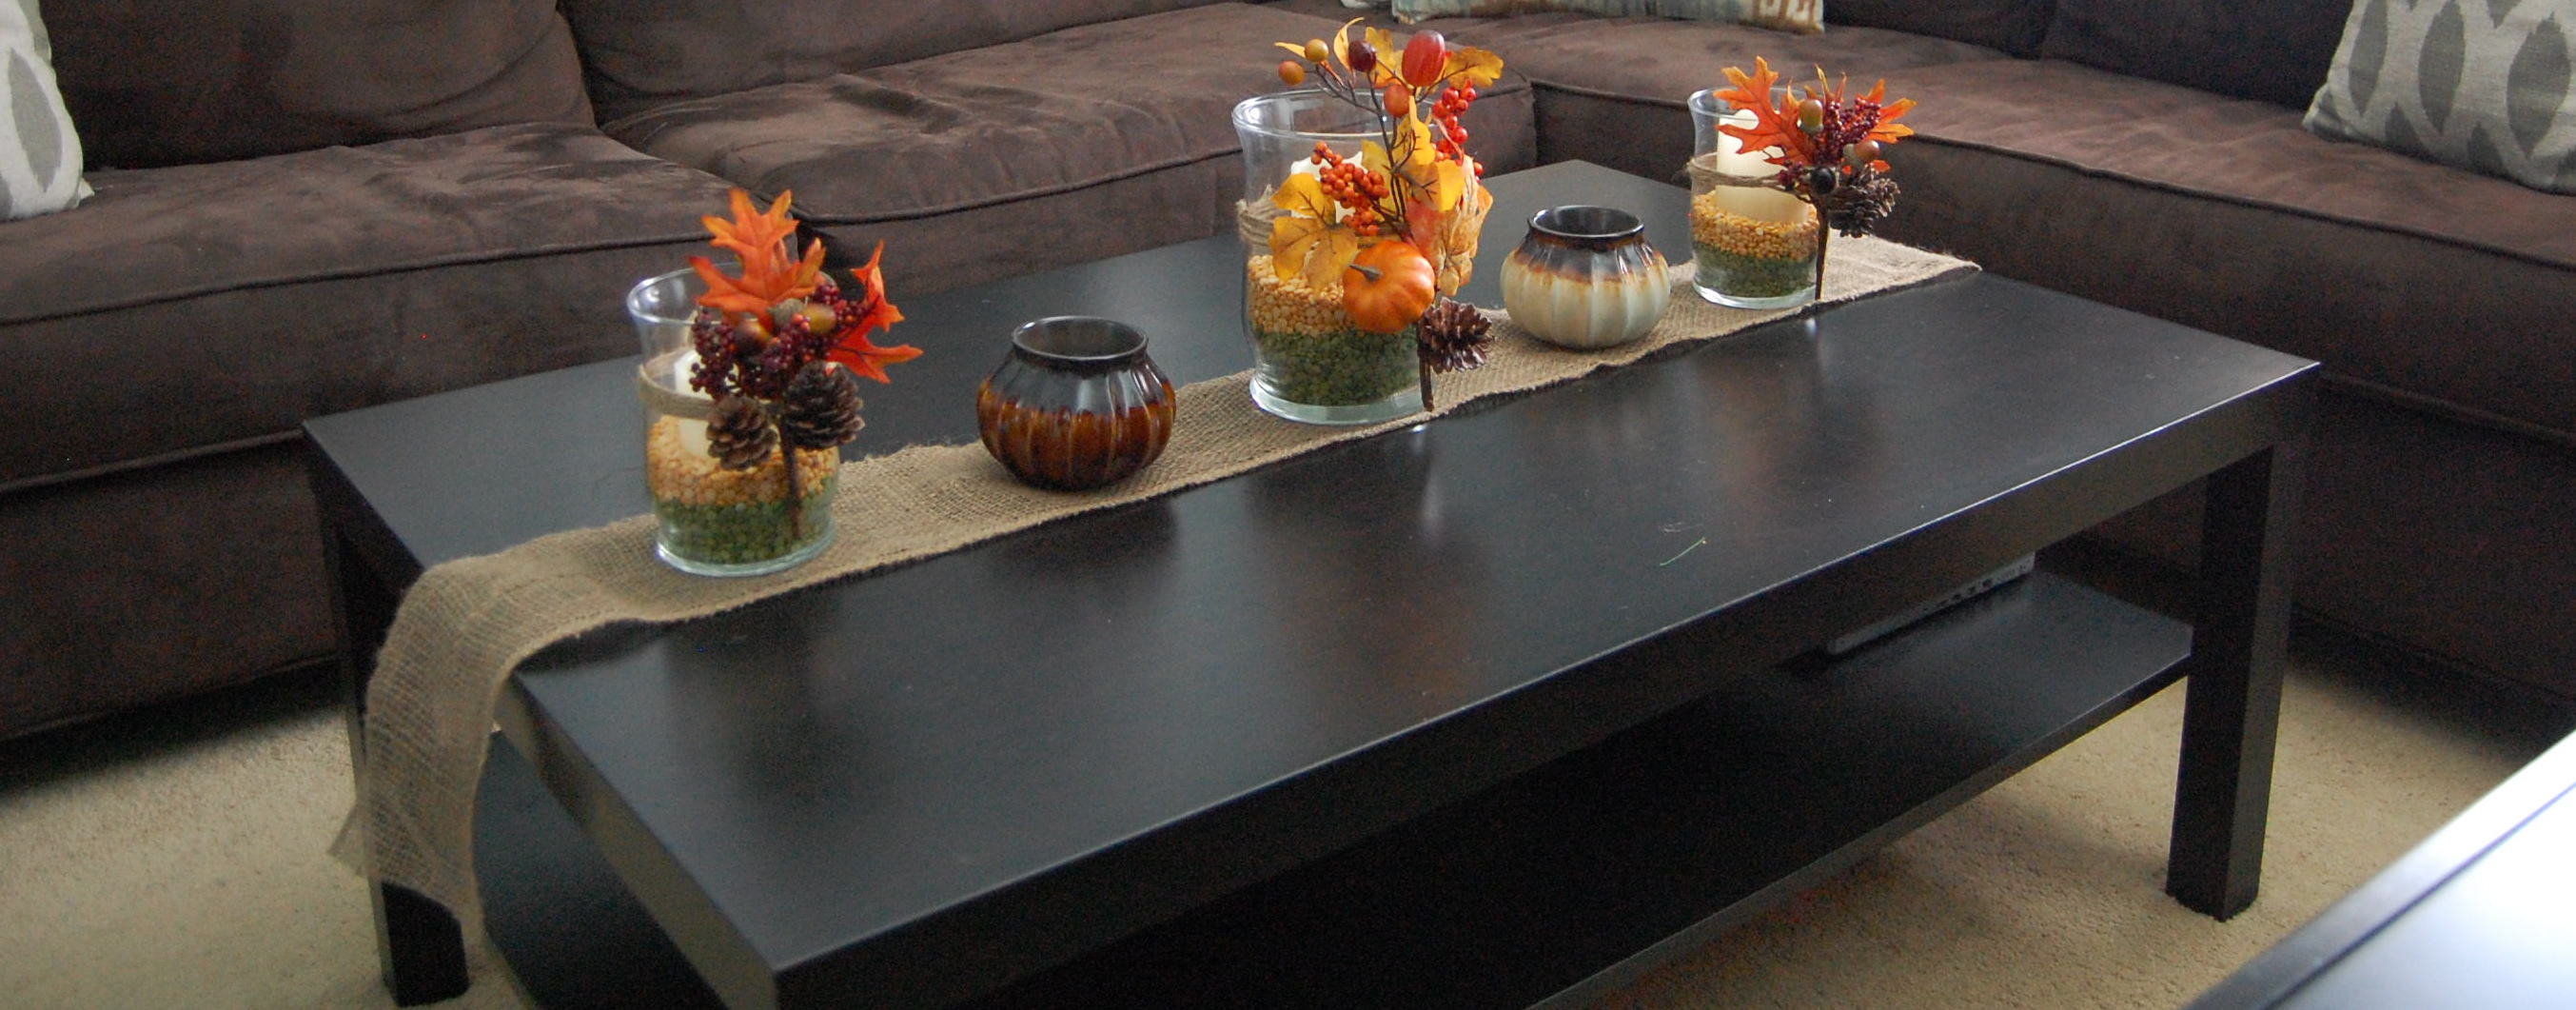 Fall table decor made2style for House table decorations